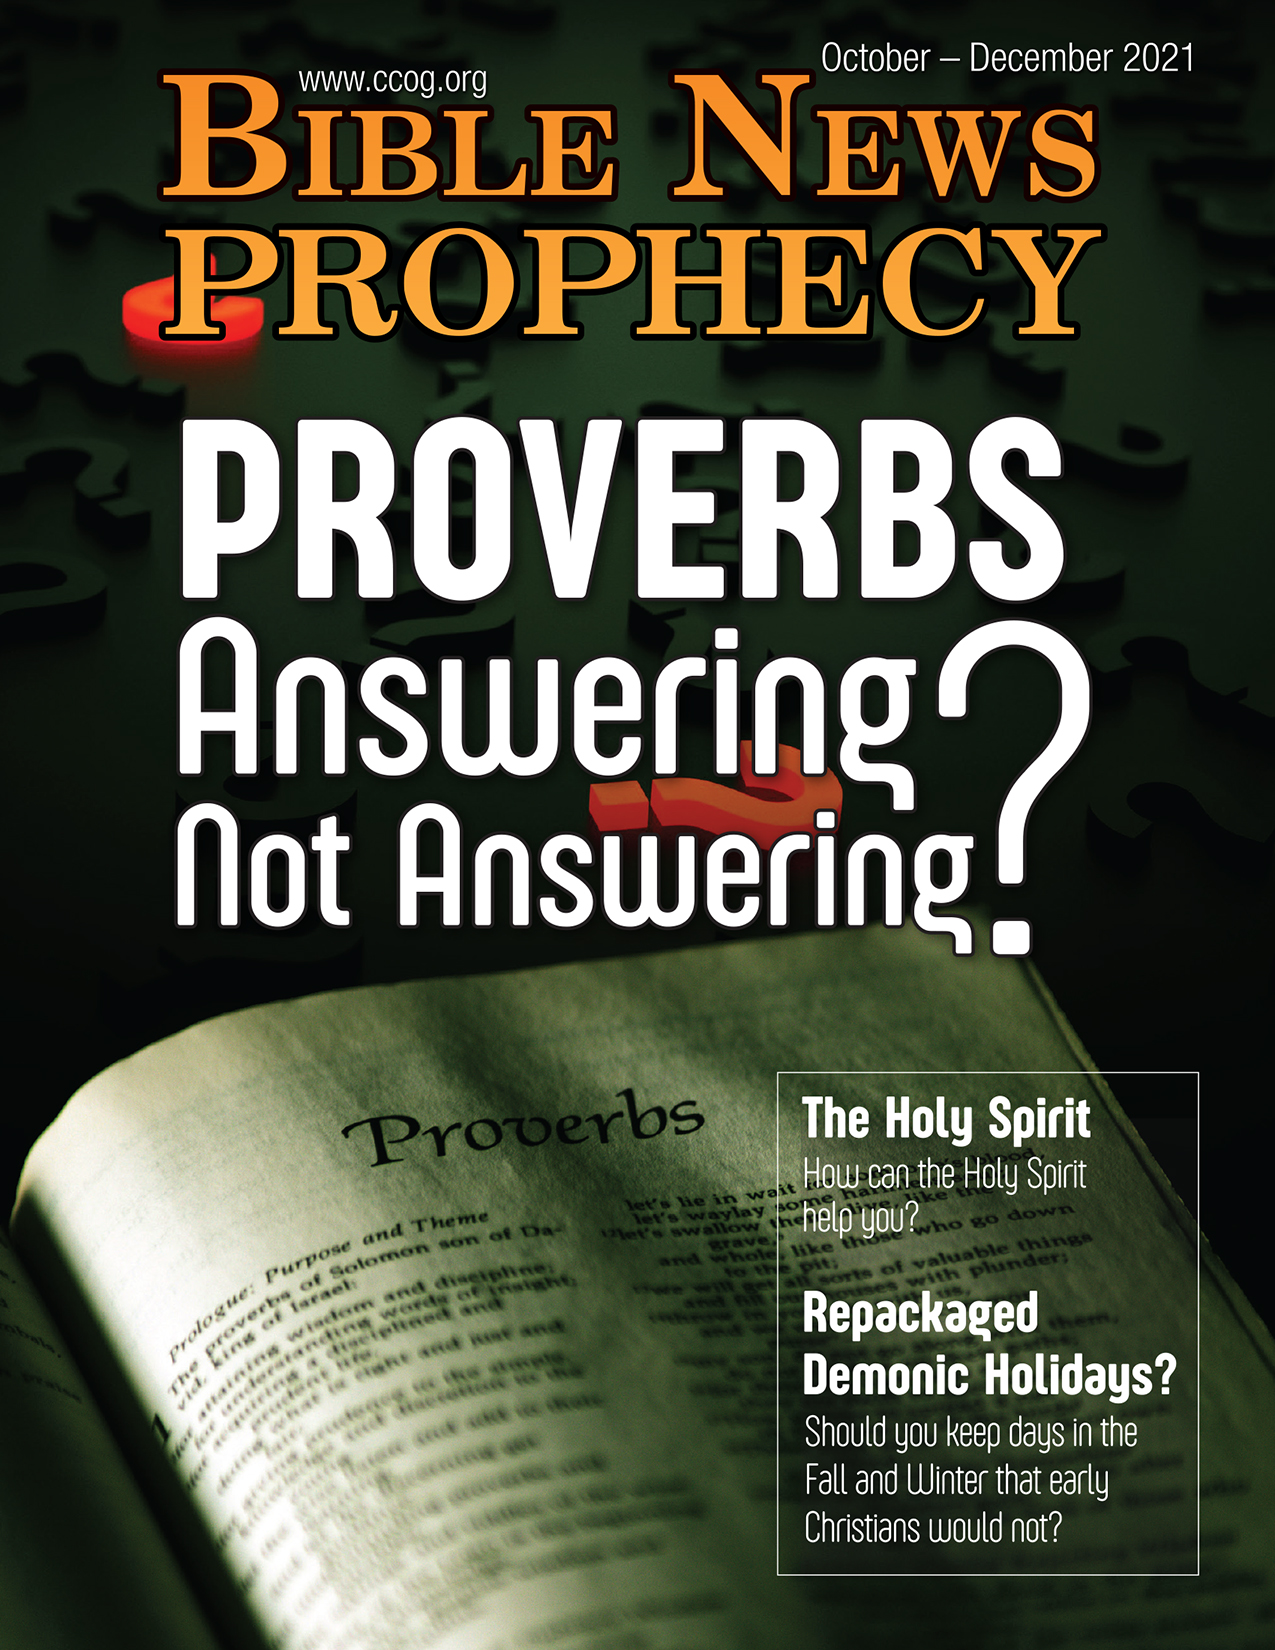 Bible News Prophecy October – December 2021: Proverbs Answering? Not answering?